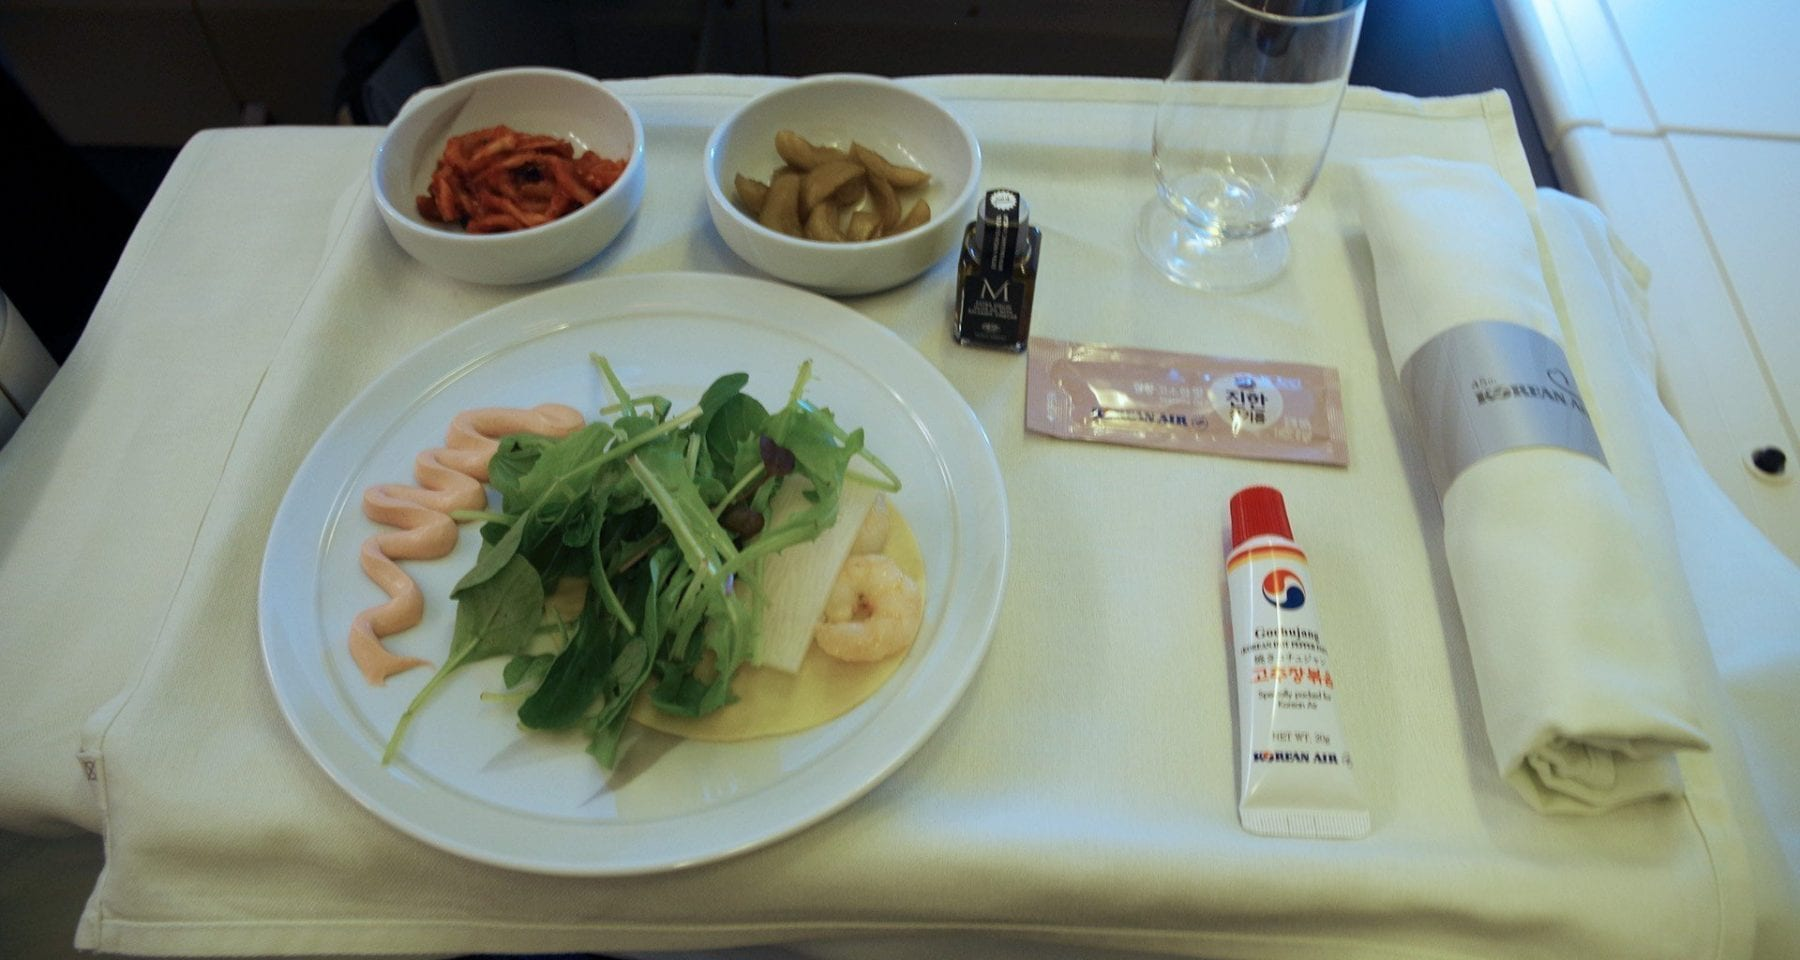 Korean air entree salad business class